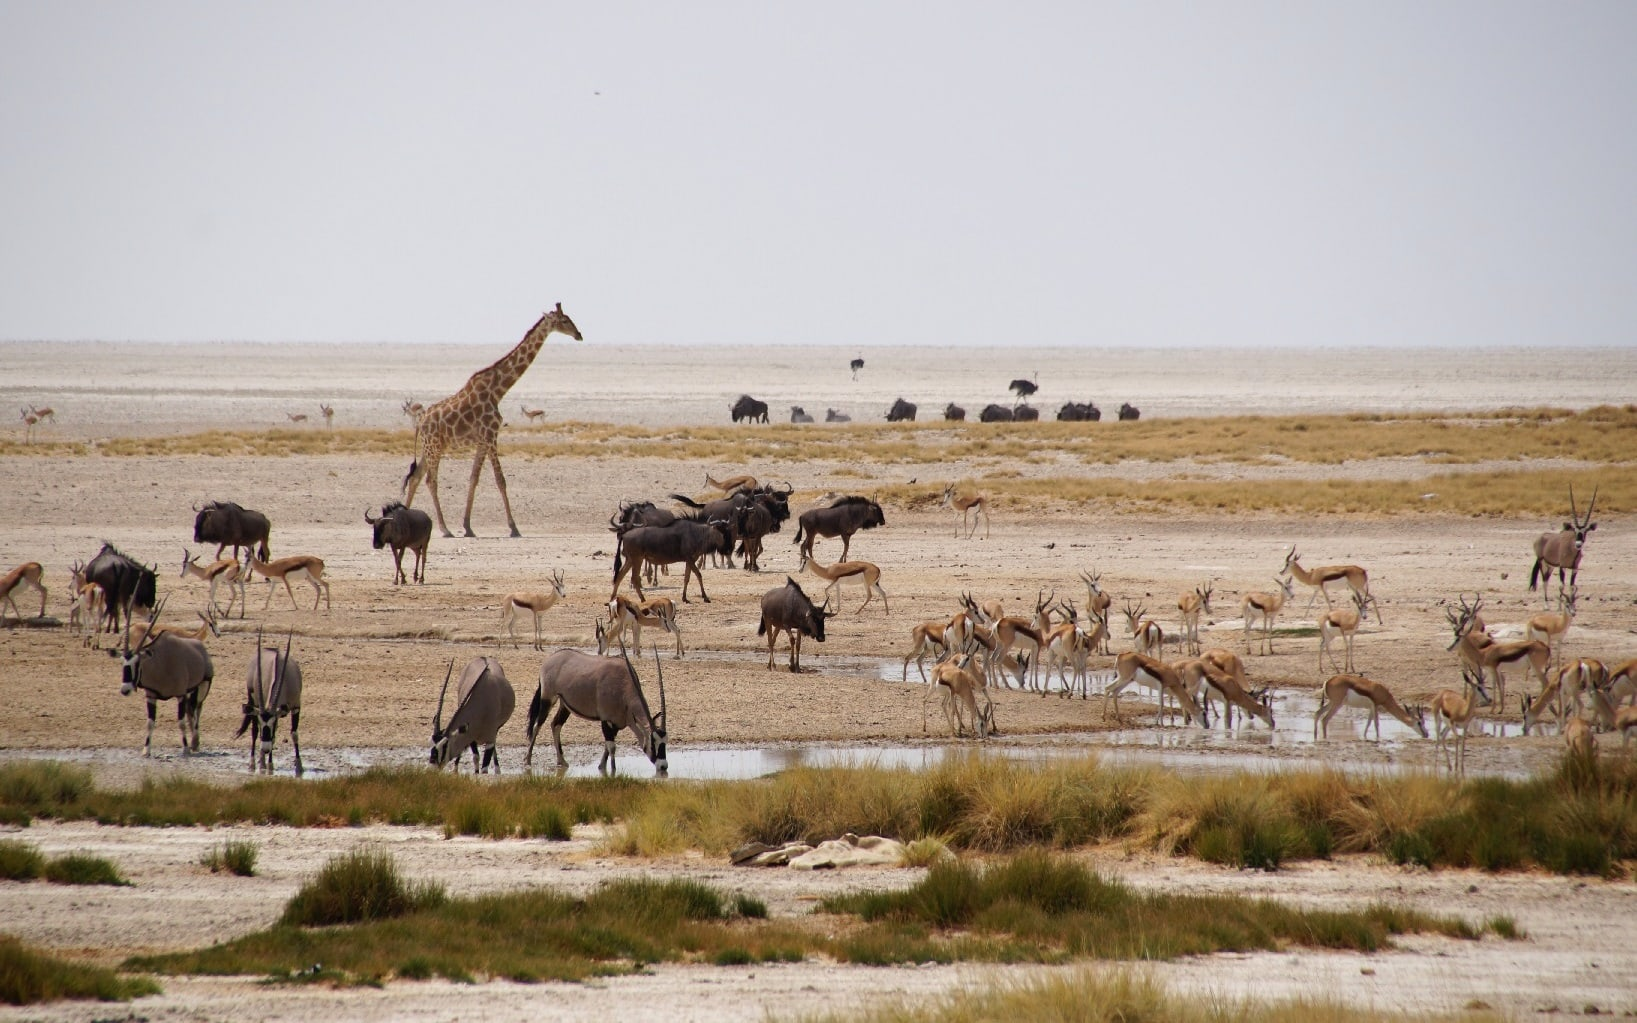 Auf Safari im Etosha Nationalpark in Namibia